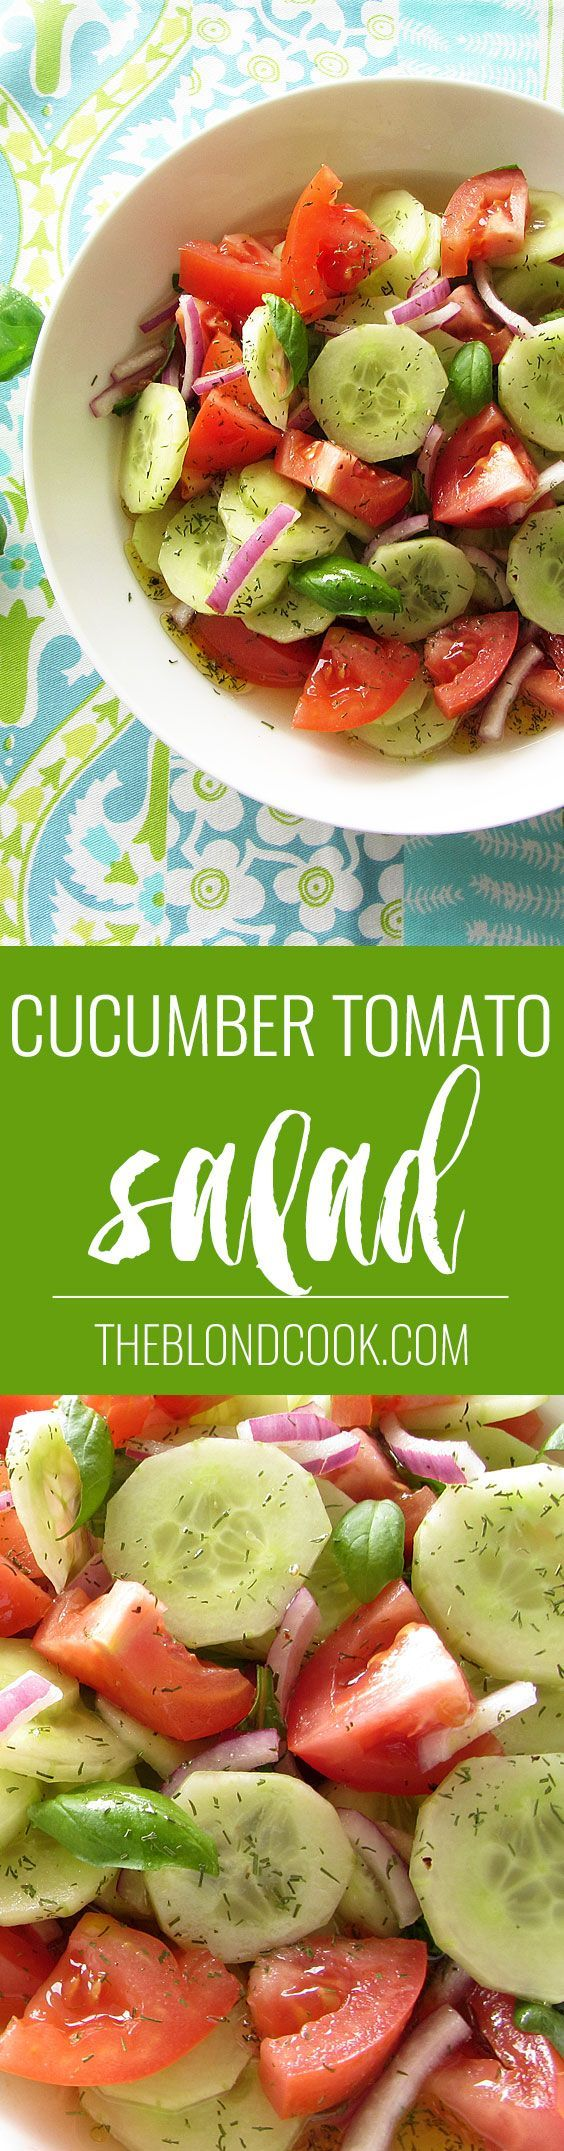 Cucumber Tomato Salad - A healthy salad with a homemade vinaigrette | theblondcook.com